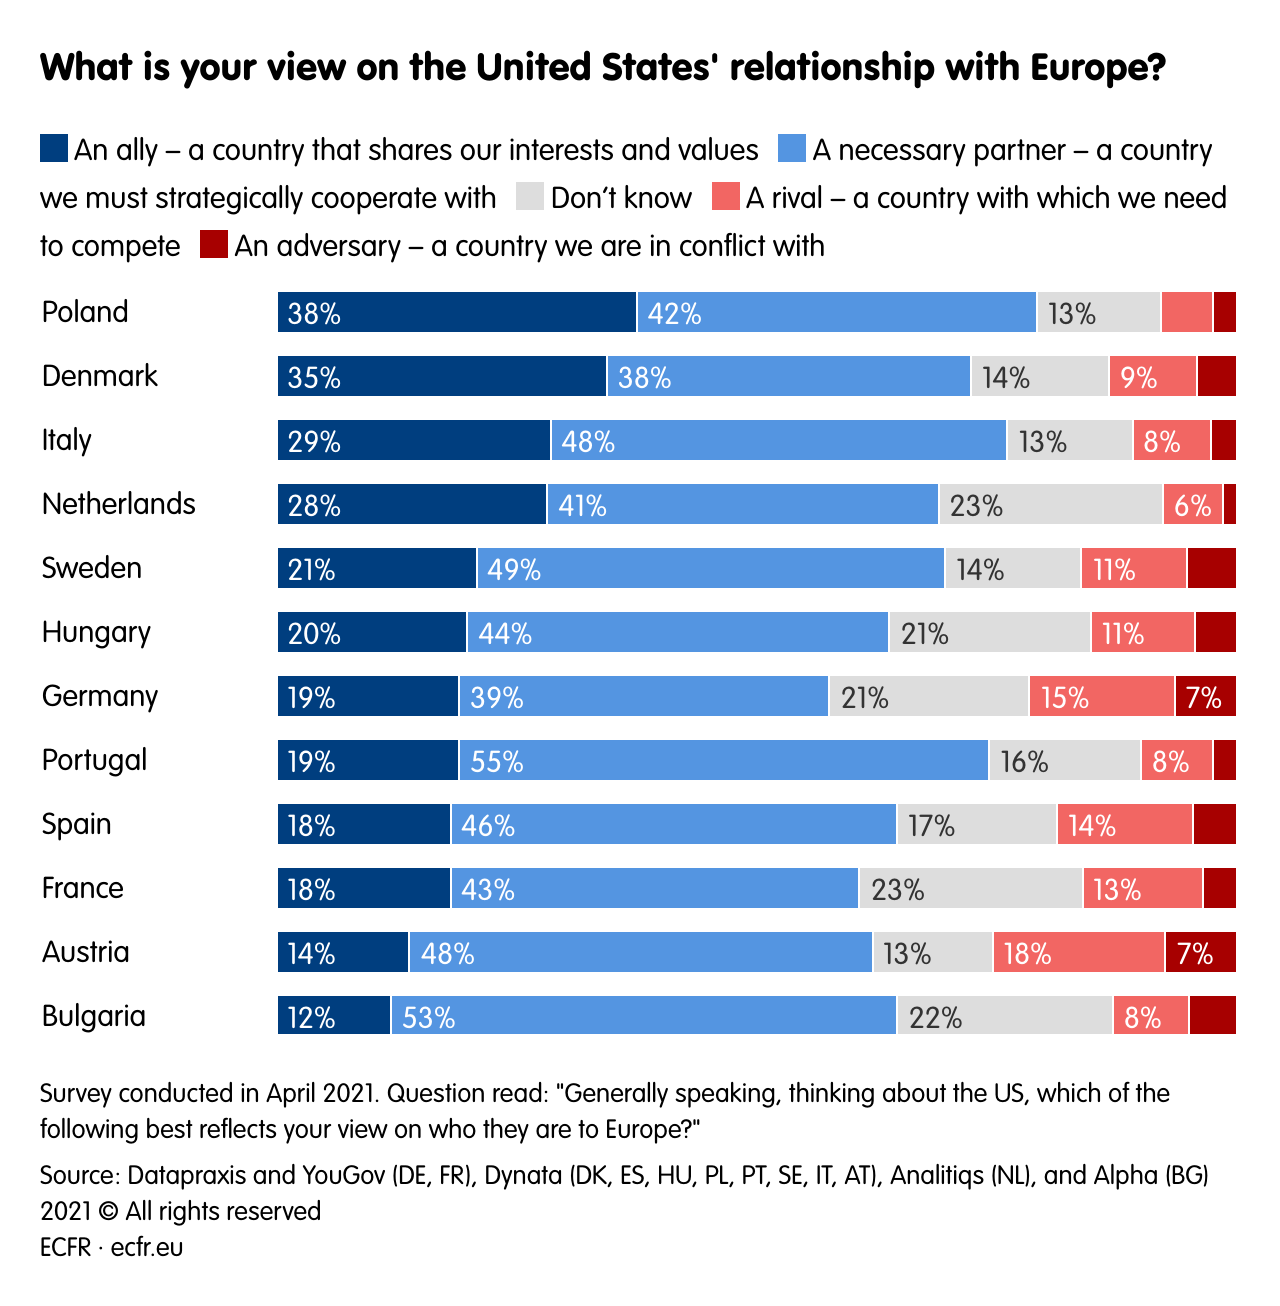 What is your view on the United States' relationship with Europe?